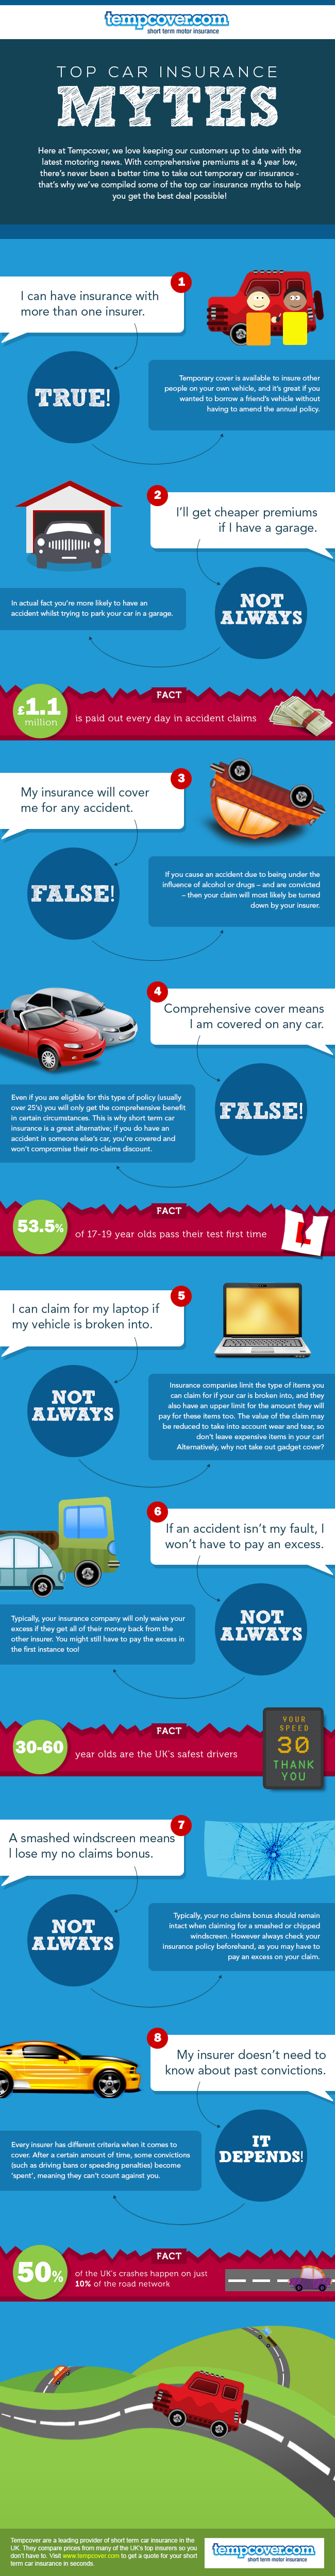 Tempcover Car Insurance Myths - Complete